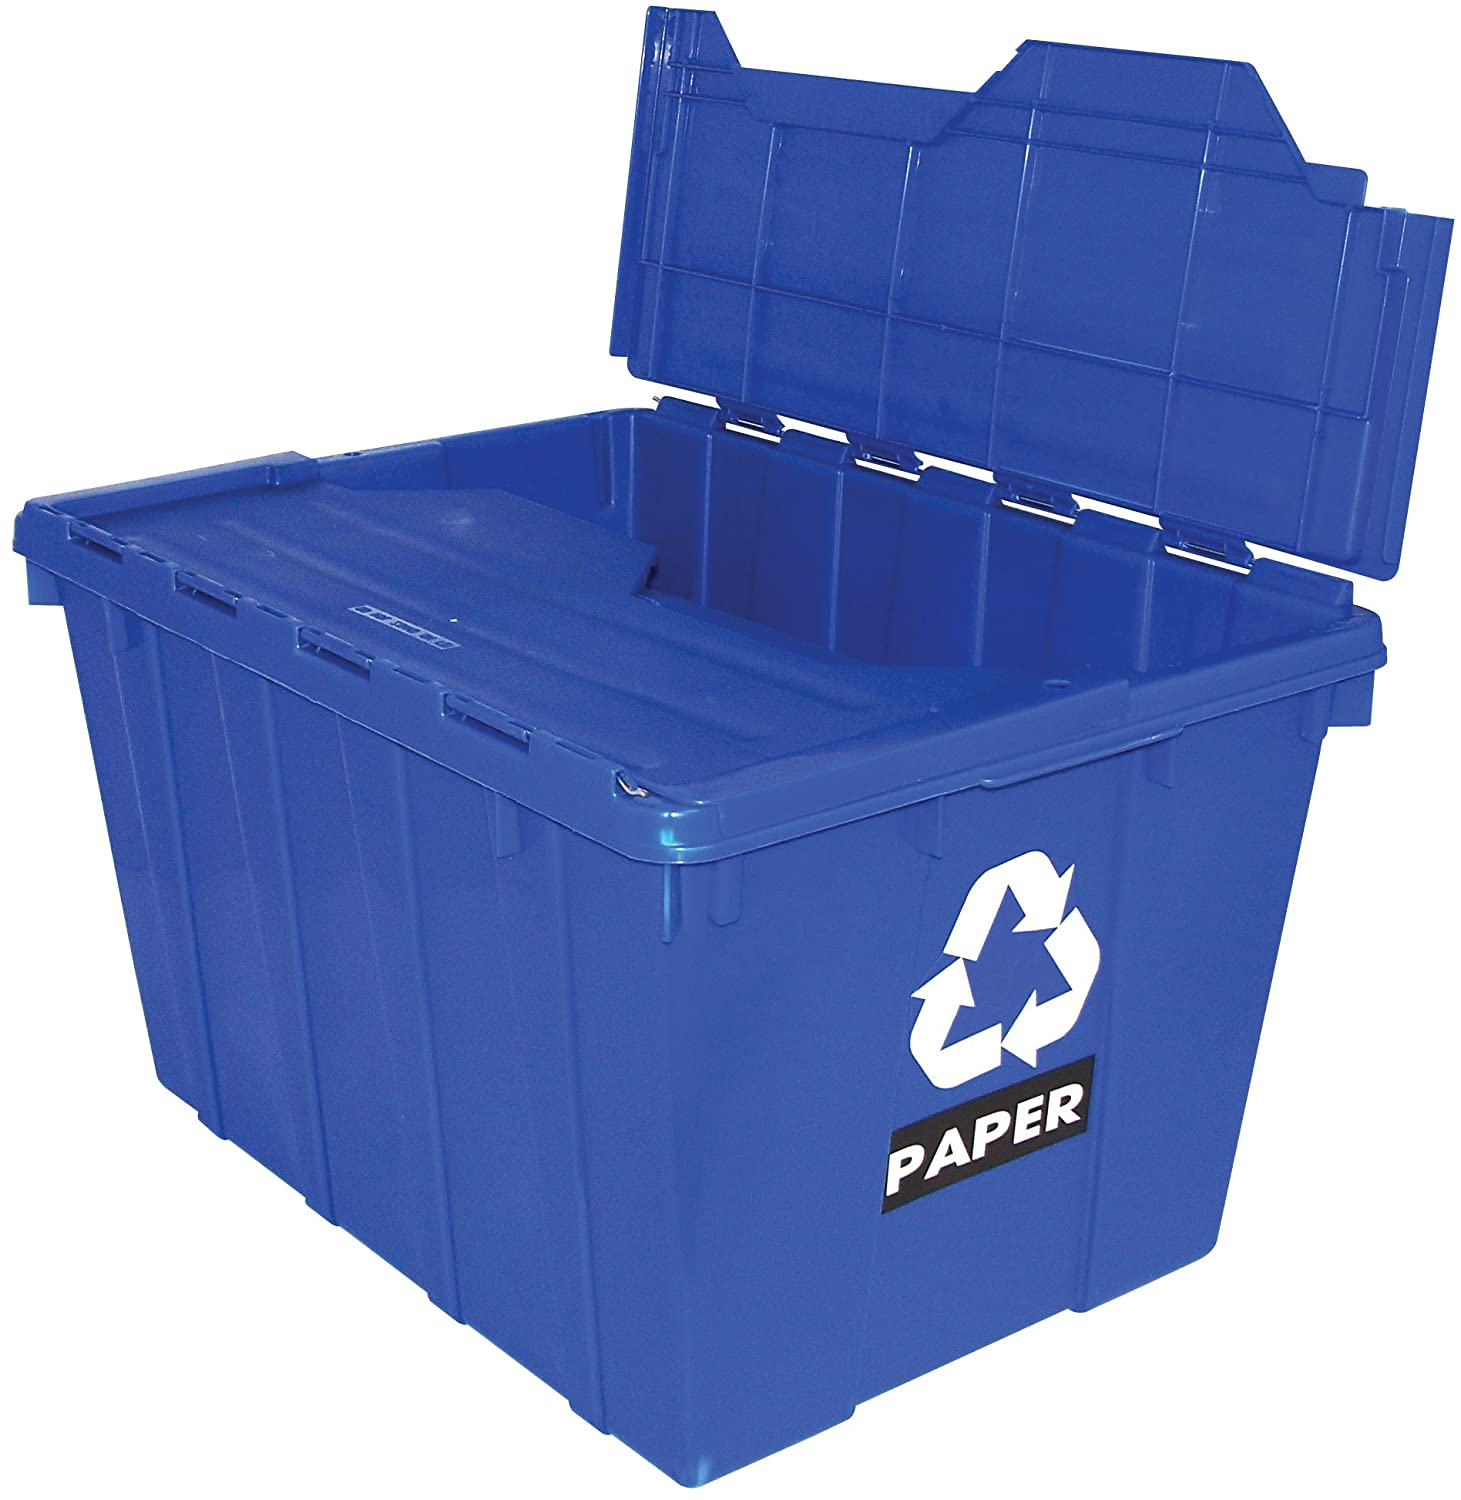 United Solutions EcoSense TO0100 Blue Thirteen Gallon Recycling Tote with Flip Lid - 13 Gallon Flip Lid Recycling Bin in Blue 602337